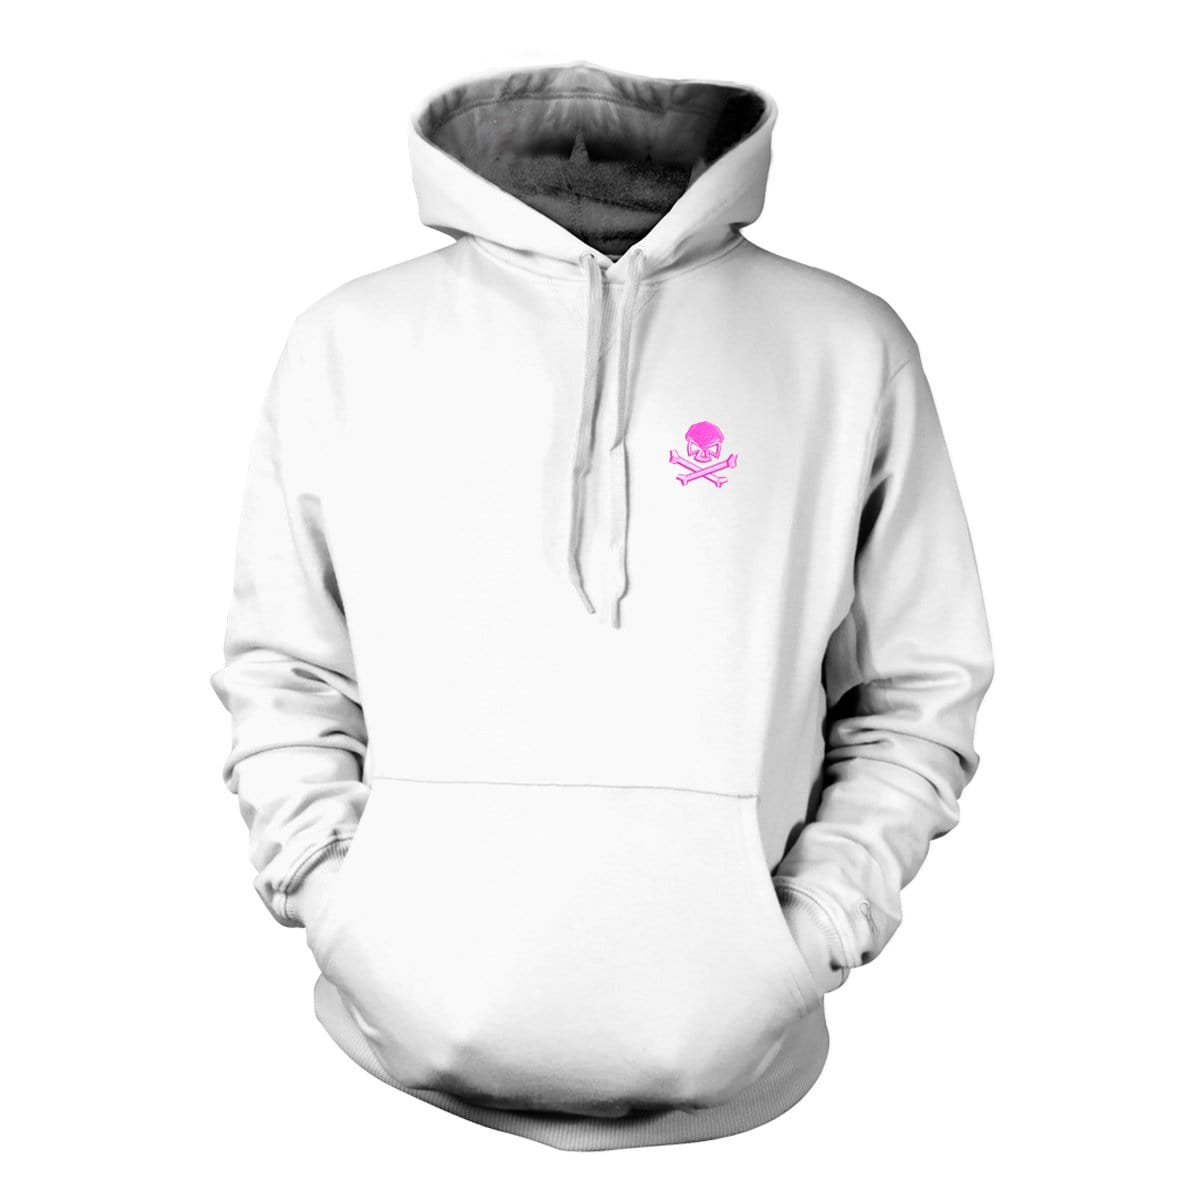 Skull & Bones Hoodie (Embroidered) - White/Pink - Hoodies - Pipe Hitters Union